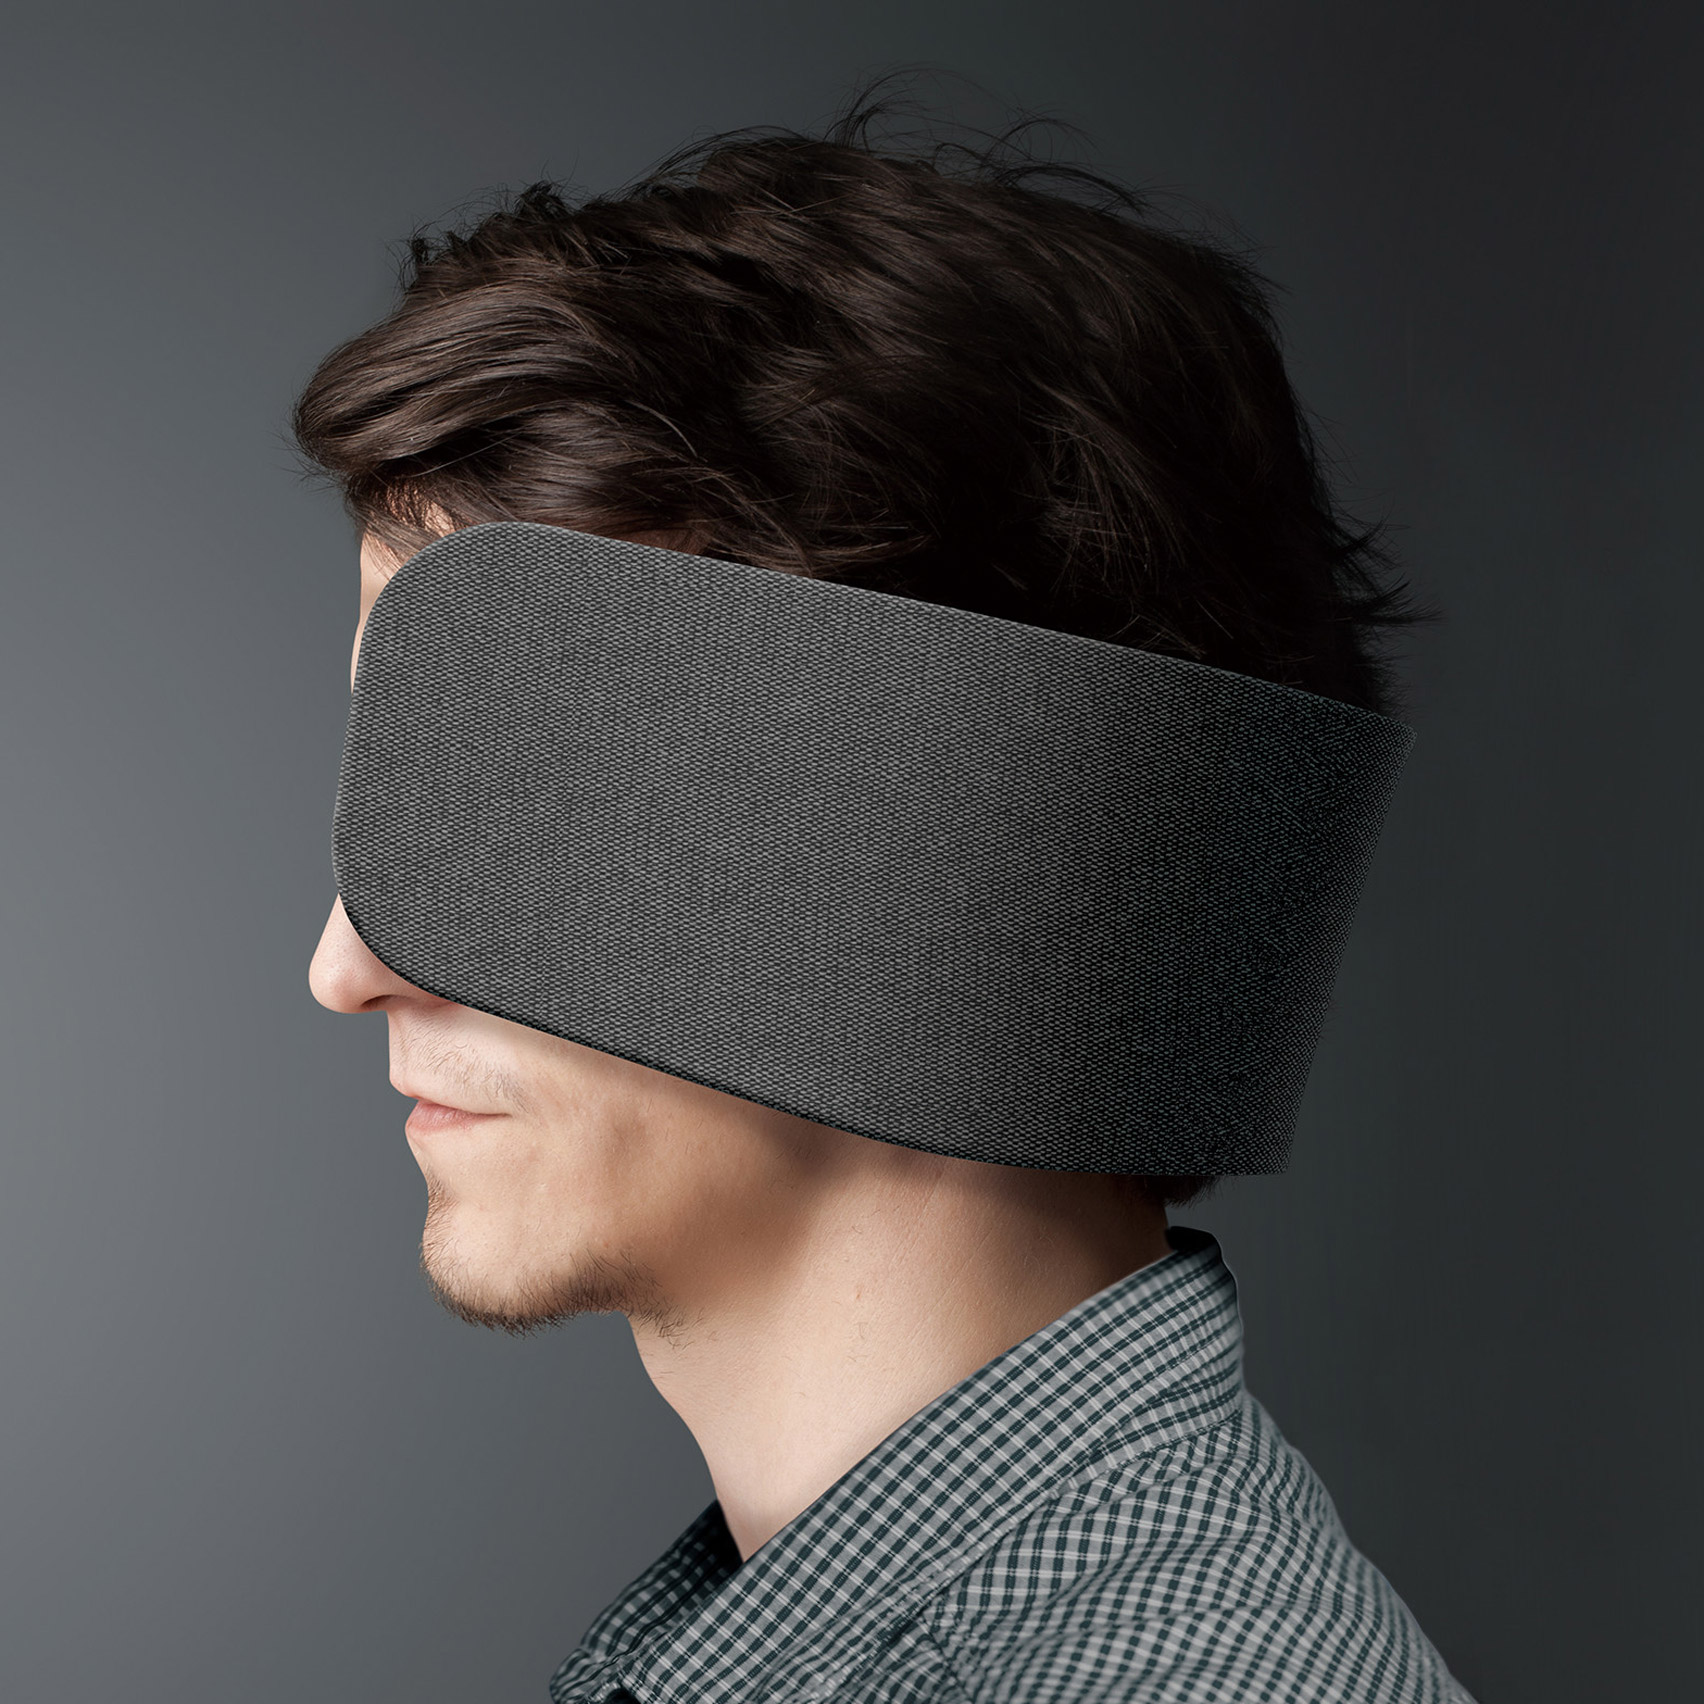 Panasonic's latest wearable device uses blinkers to help users concentrate